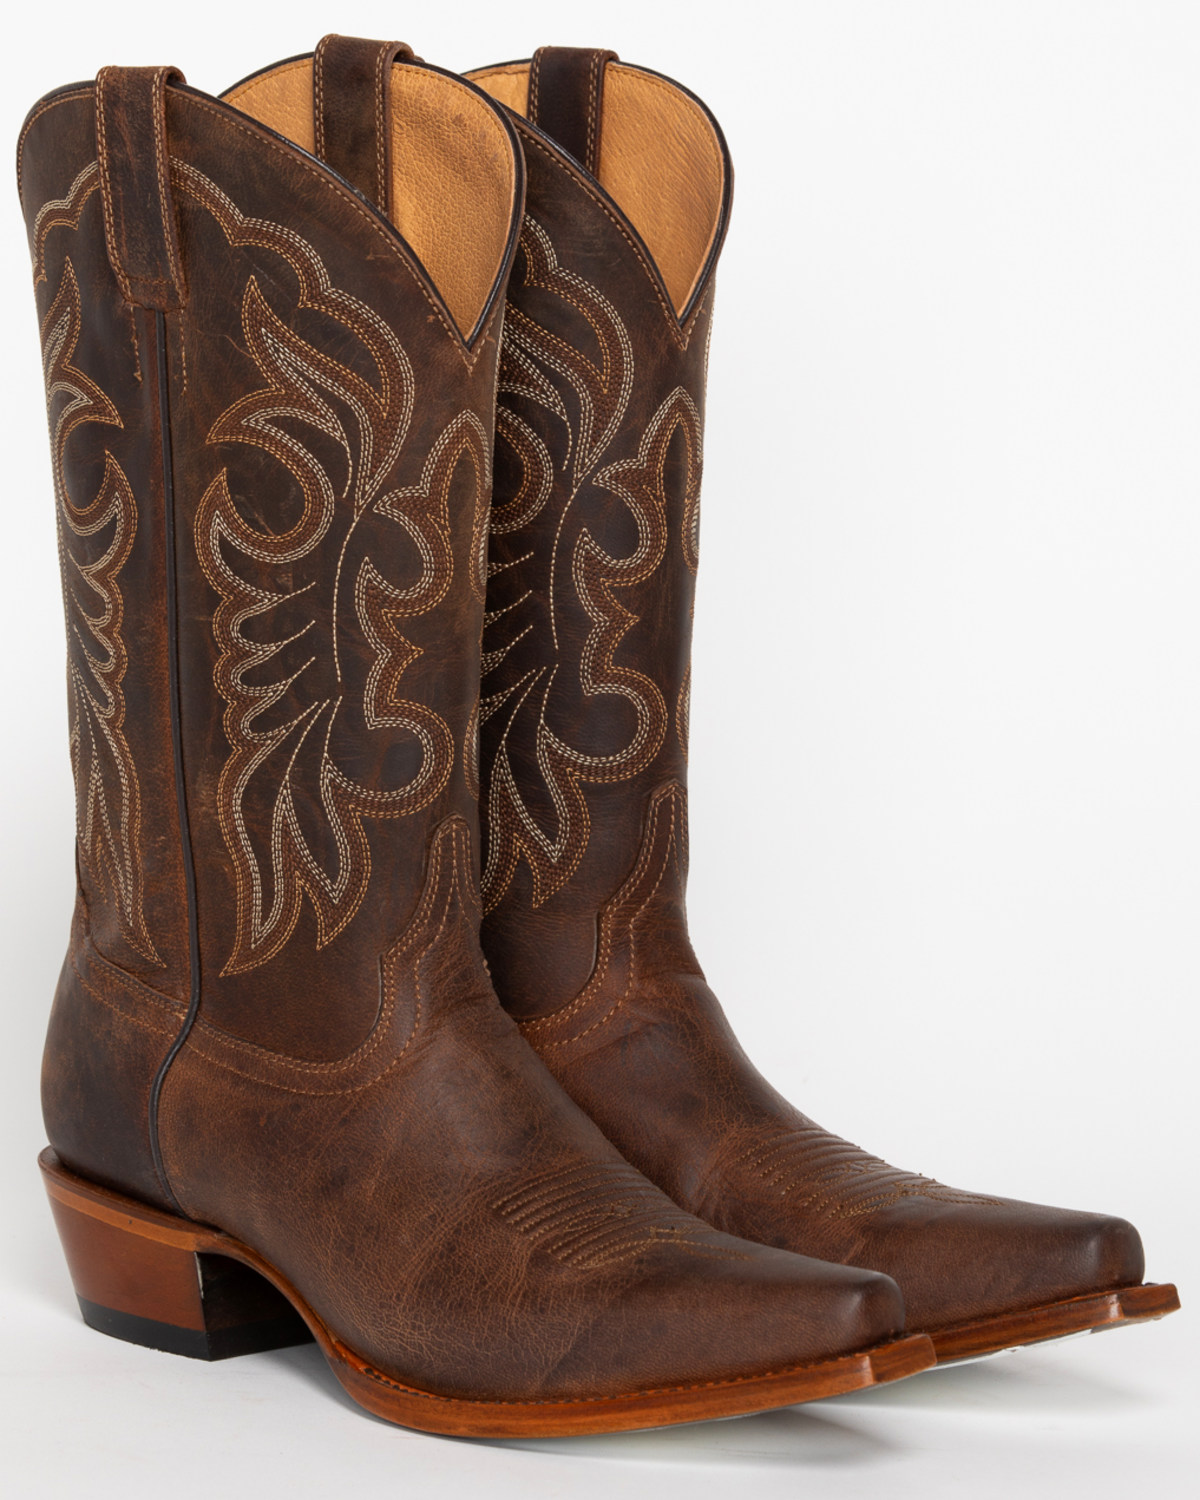 Shyanne 174 Women S San Juan Mad Dog Western Boots Boot Barn